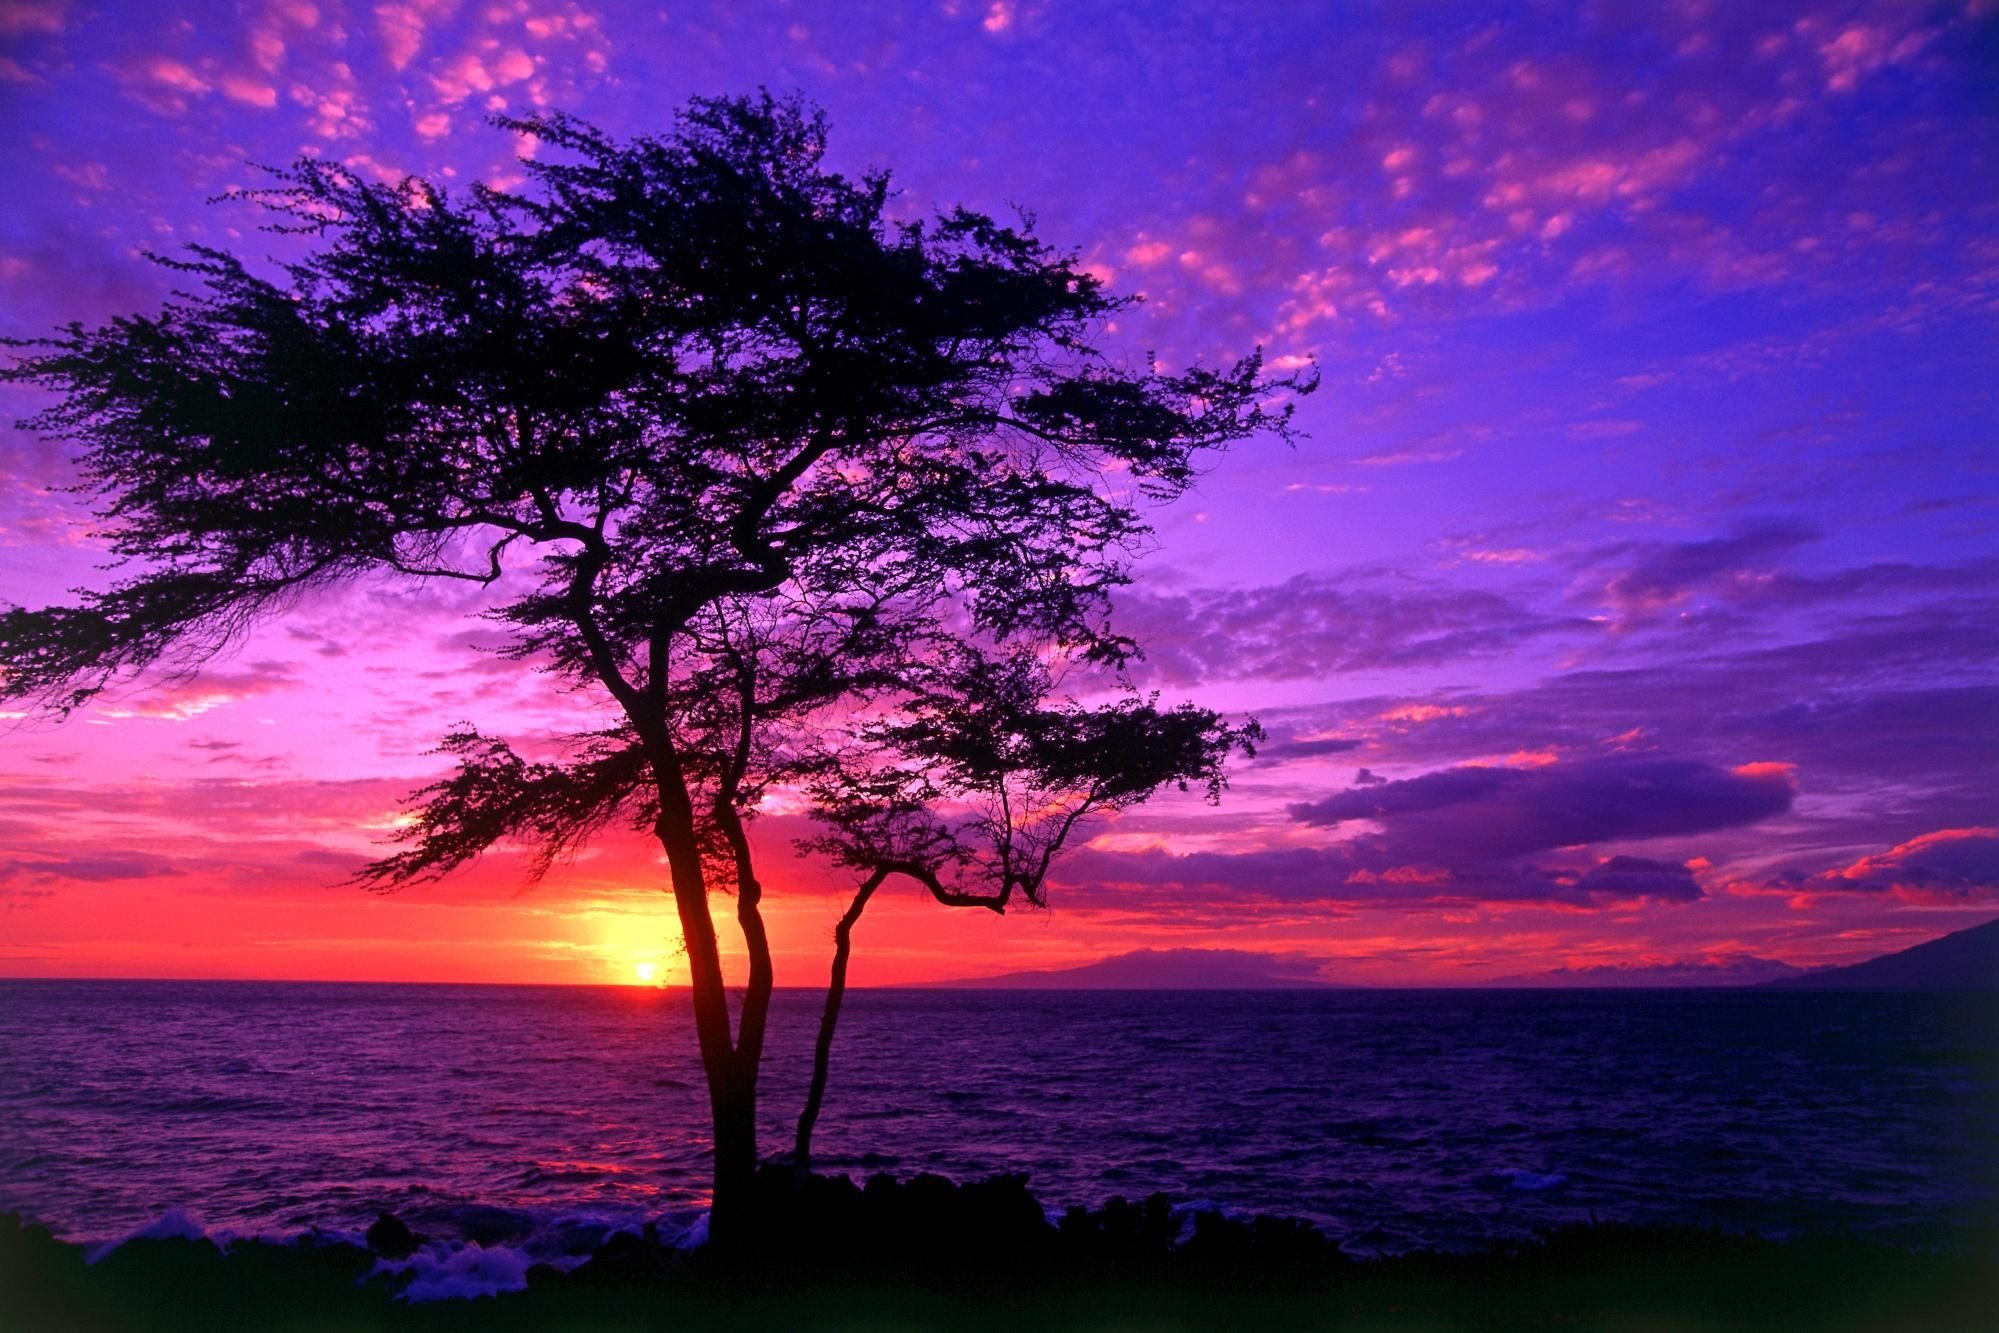 10 Beautiful Landscape Sunset Wallpapers Part 1 Www Piculous Com Amazing Pictures Around The World Beautiful Nature Beautiful Landscapes Sunset Wallpaper